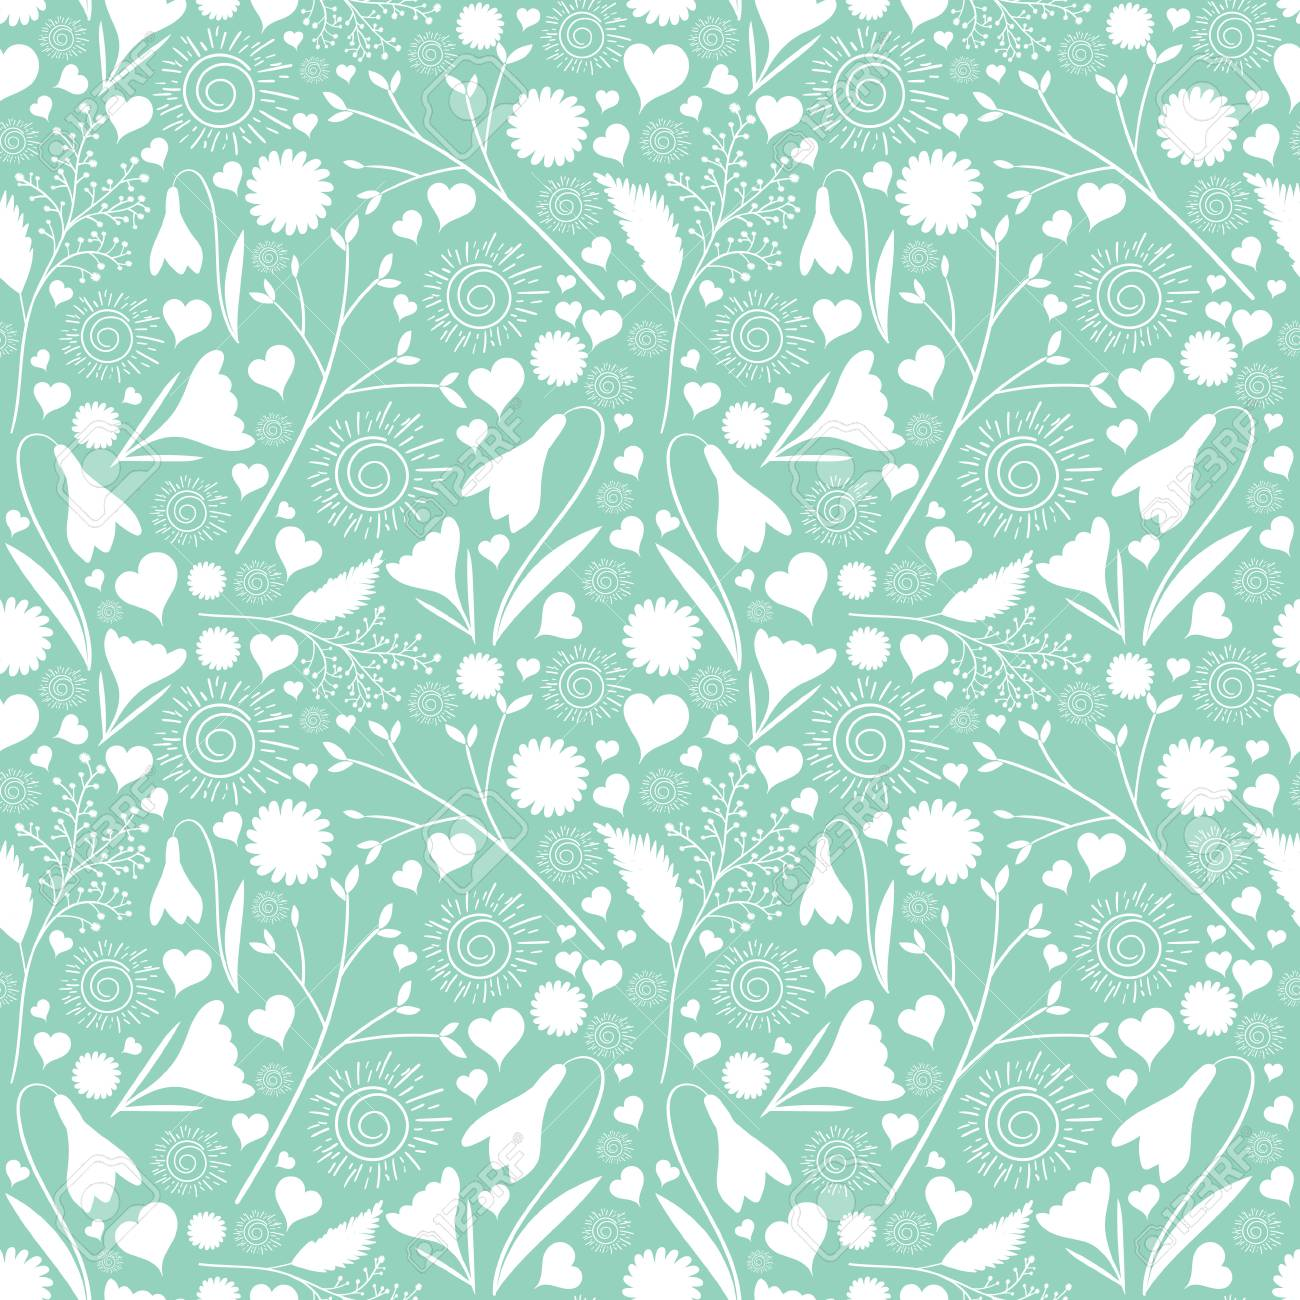 White flower pattern vector seamless on mint green background vector white flower pattern vector seamless on mint green background floral print for spring cards girl female design wedding invitation save the date mightylinksfo